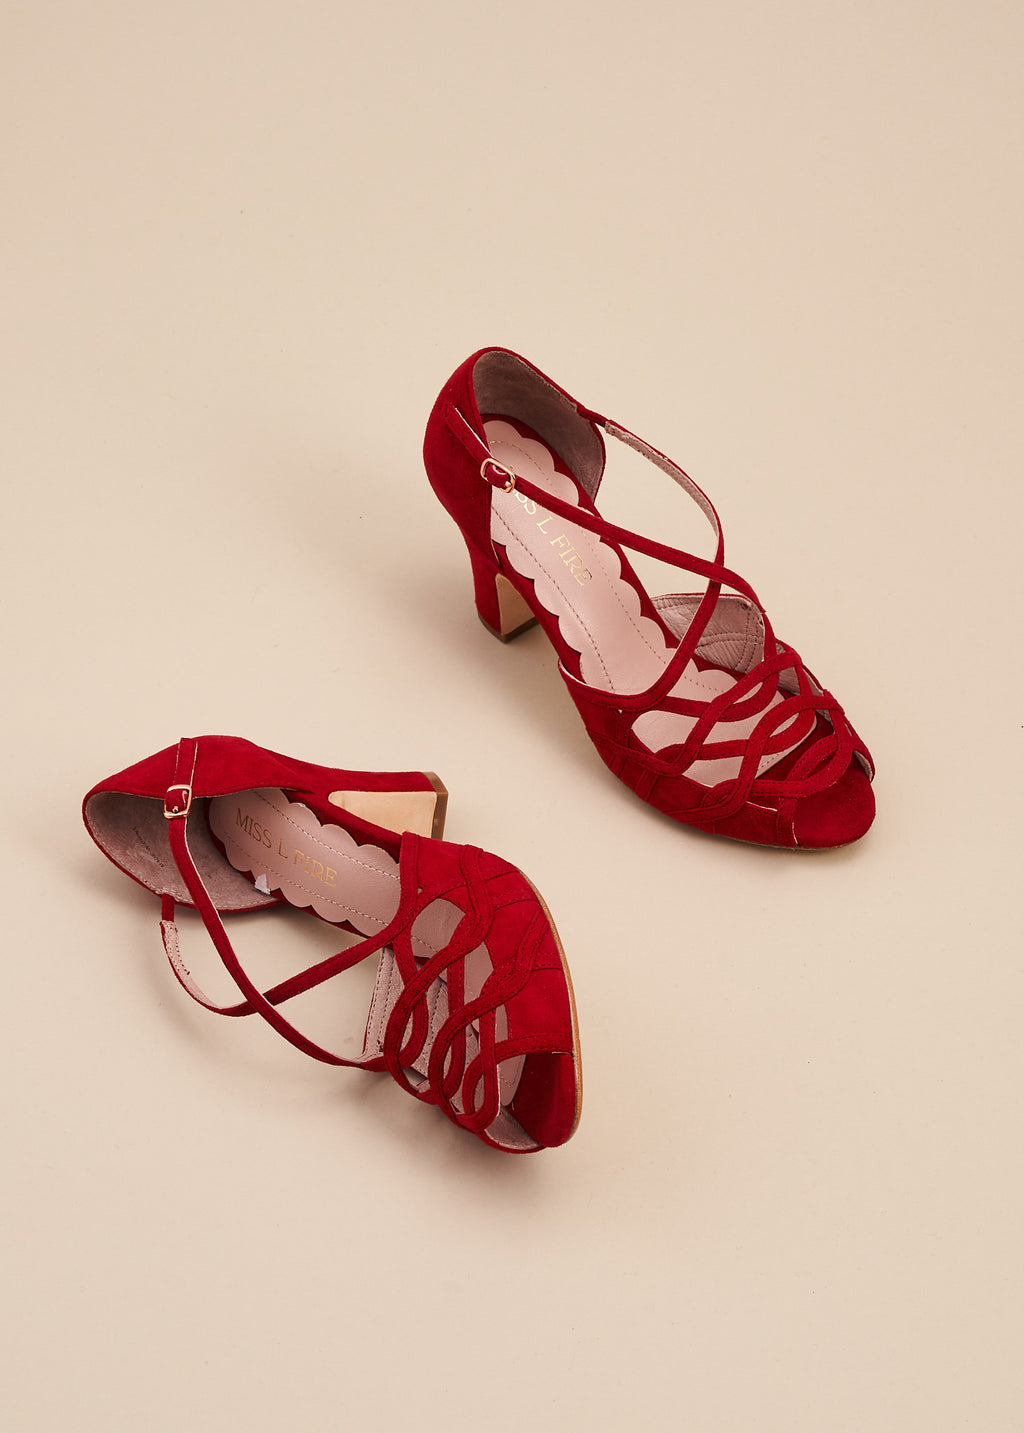 Adele ruby red soft suede strappy vintage inspired sandal with peep toe and closed back. All leather upper, lining and outsole, by Designer Miss L Fire.